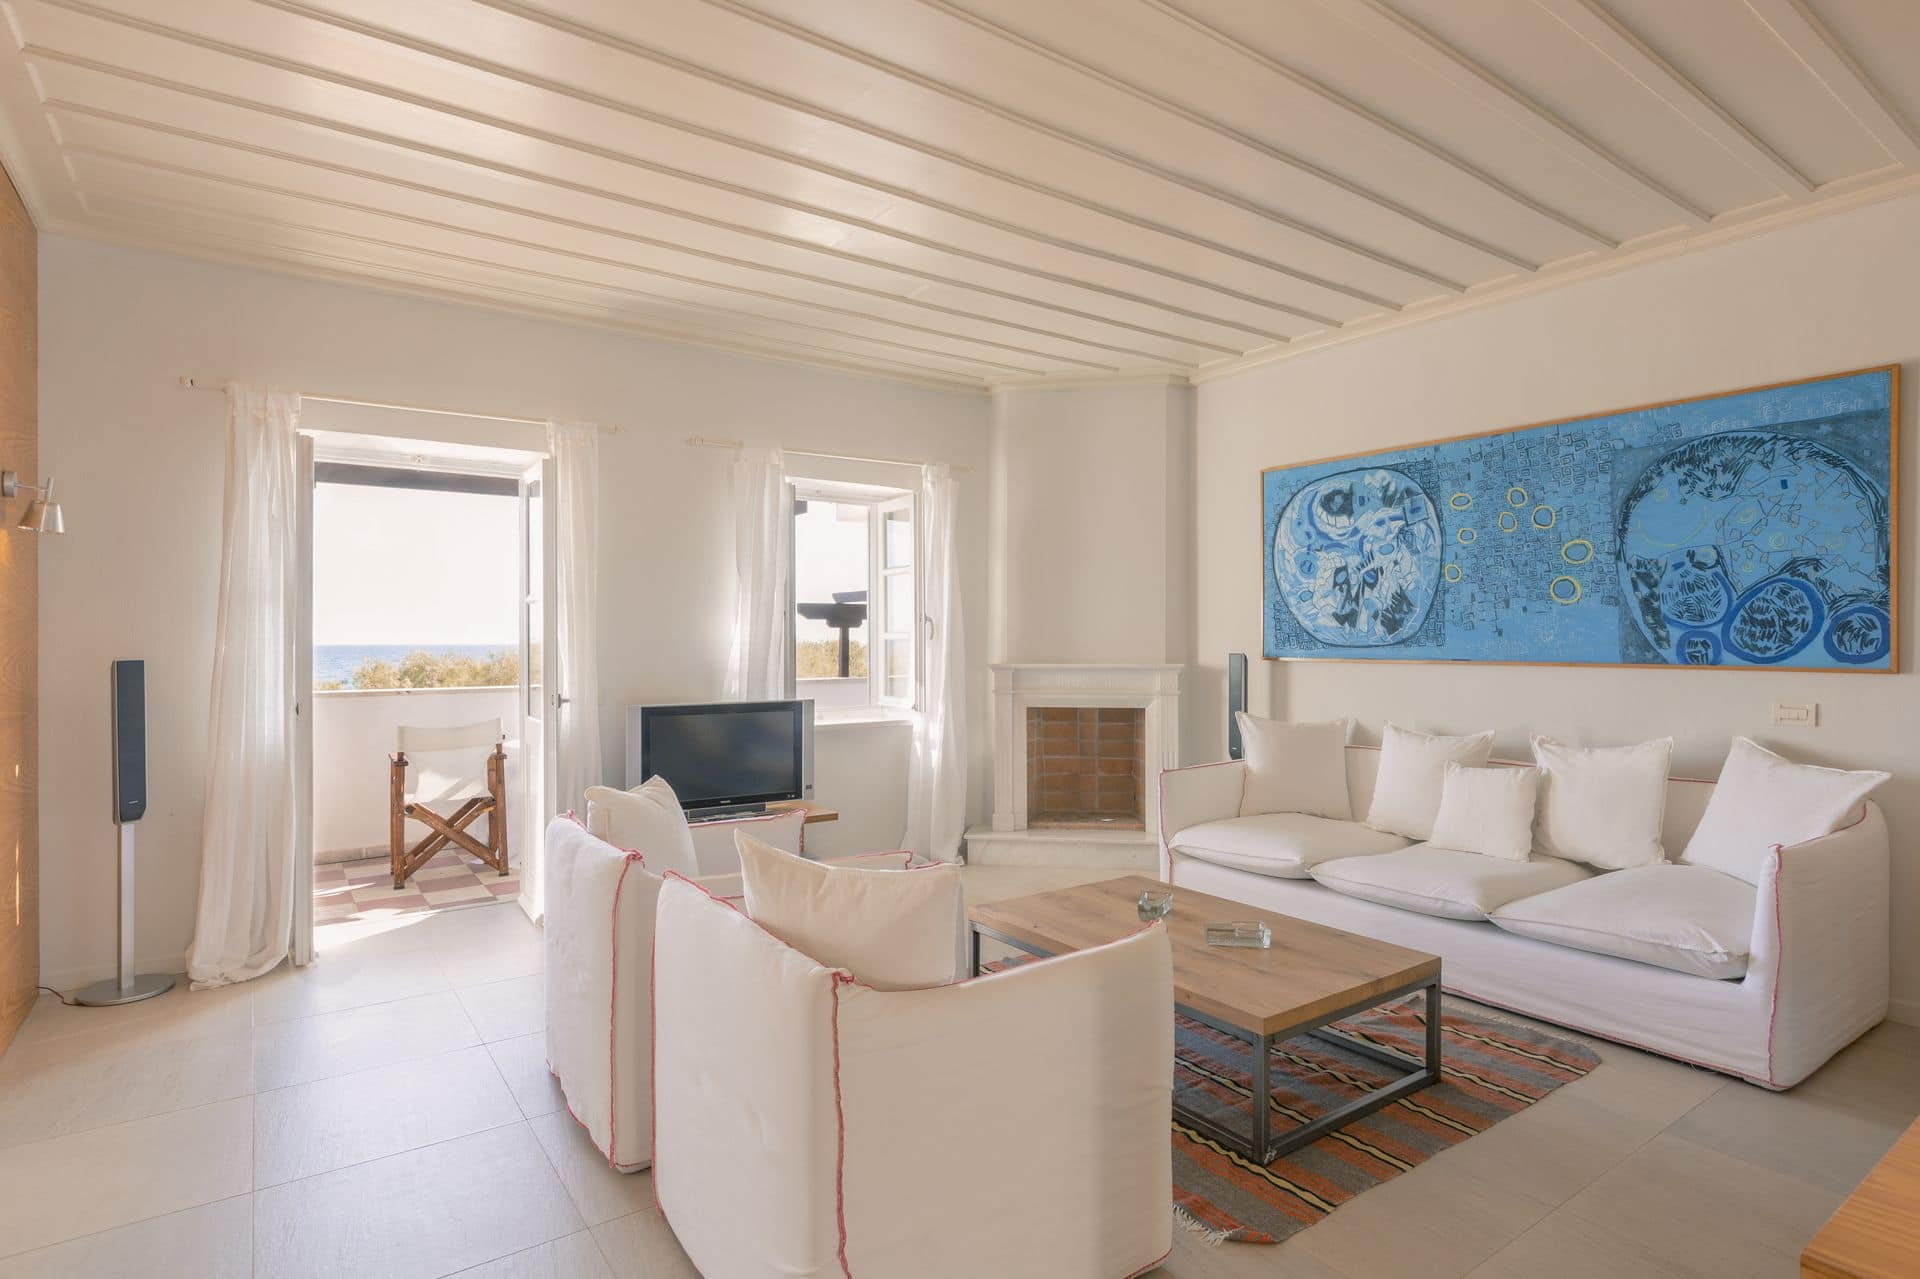 Living room of the Presidential Village seaview luxury family suite in Samos by Doryssa Seaside